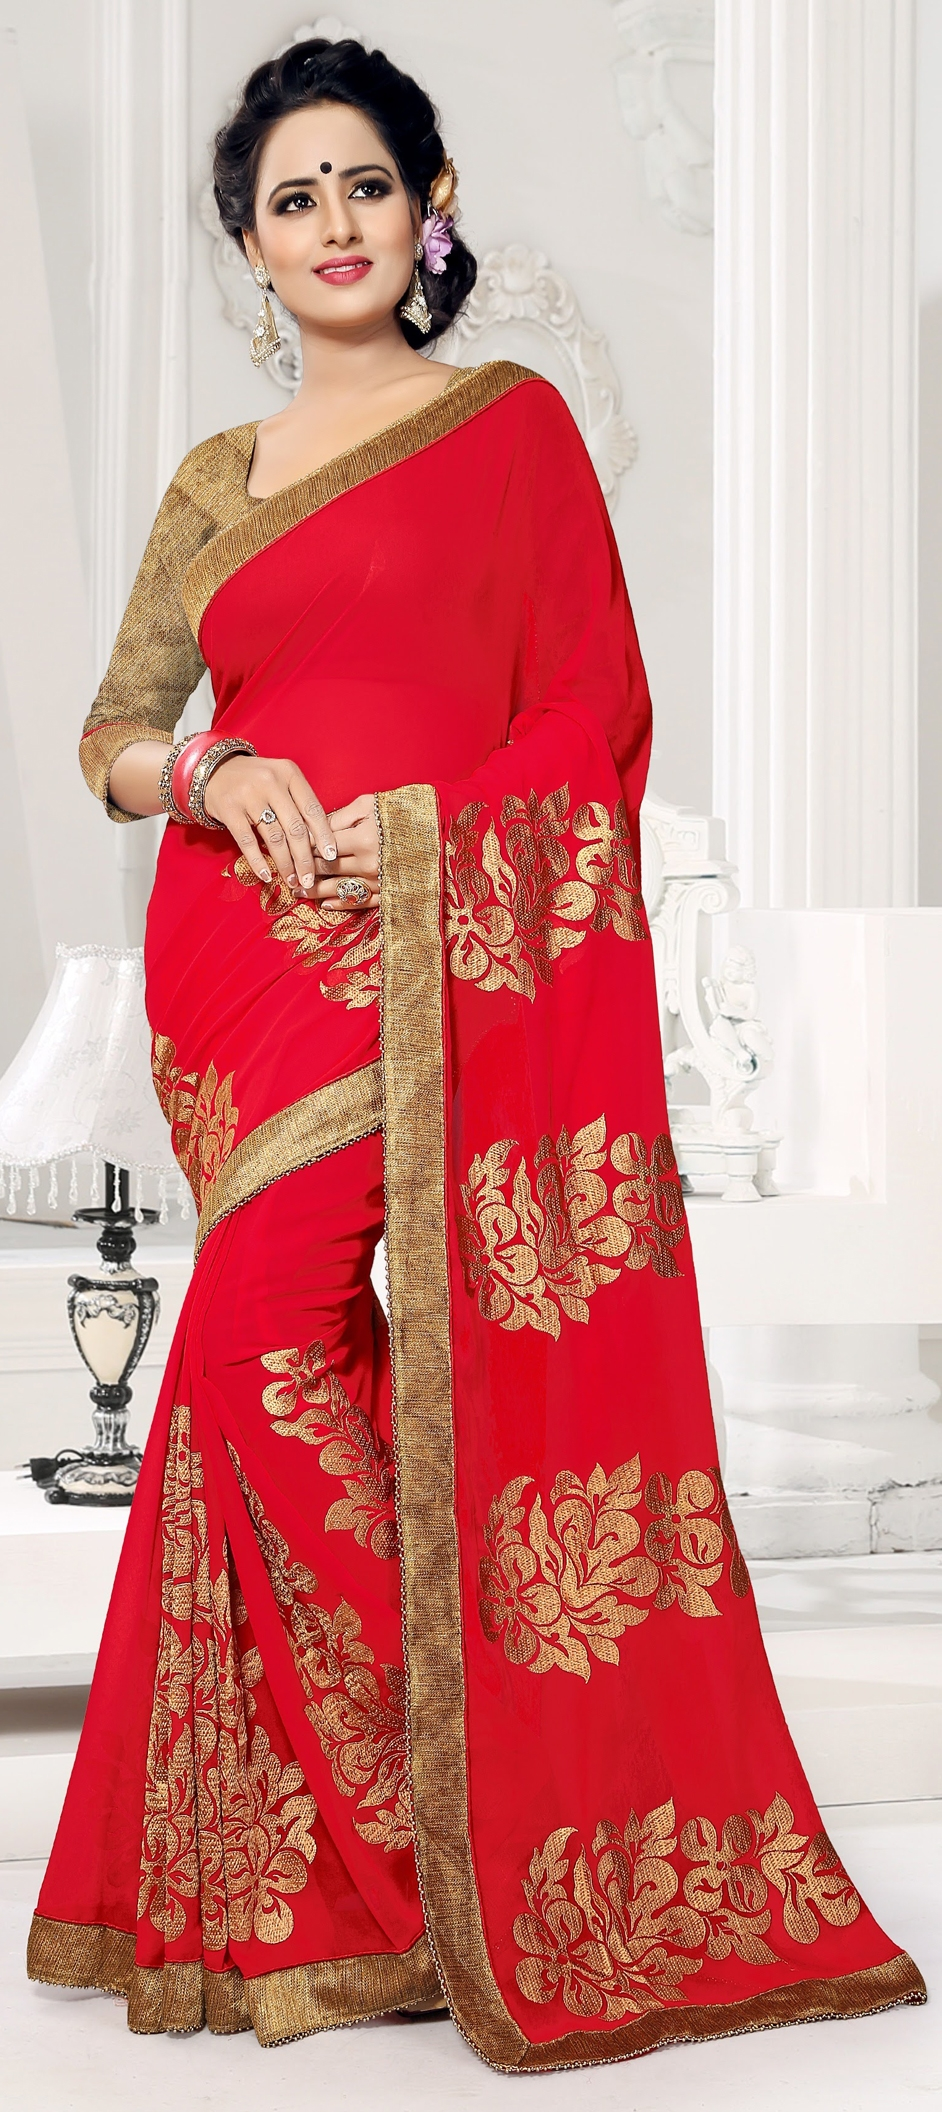 752354: Red and Maroon color family Embroidered Sarees, Party Wear ...